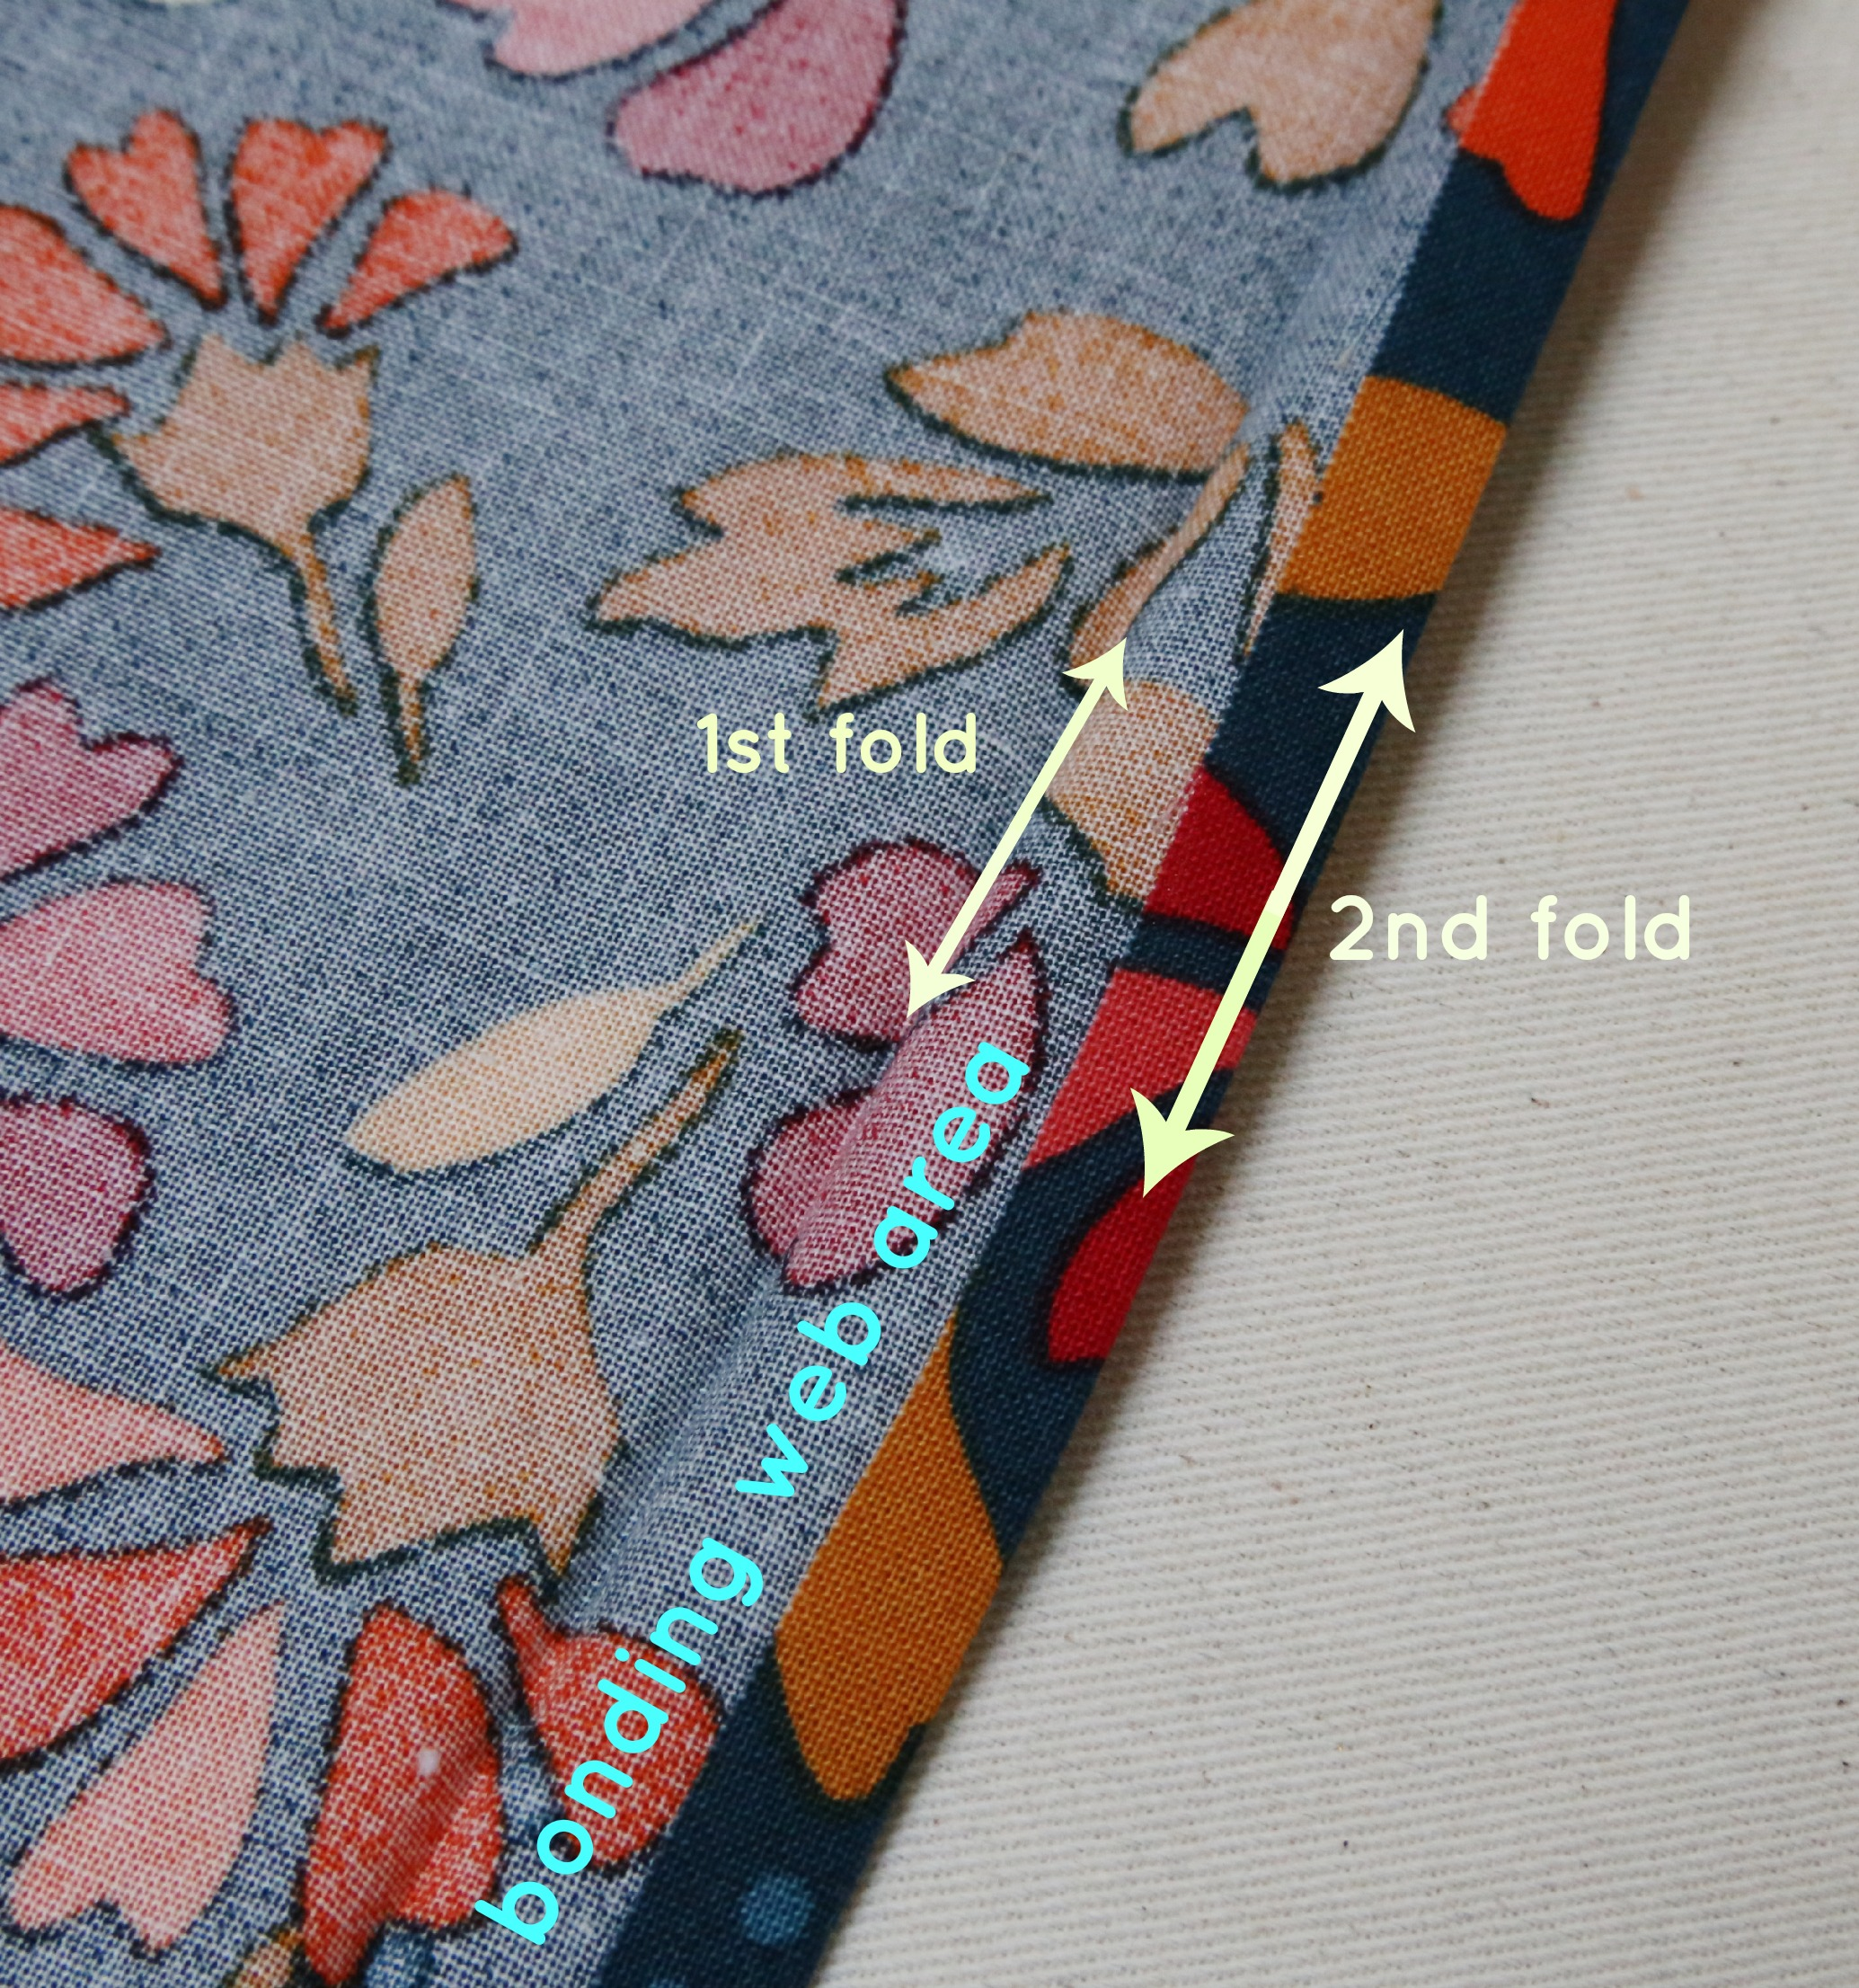 Picture of Fold Over Again and Iron in Bonding Web